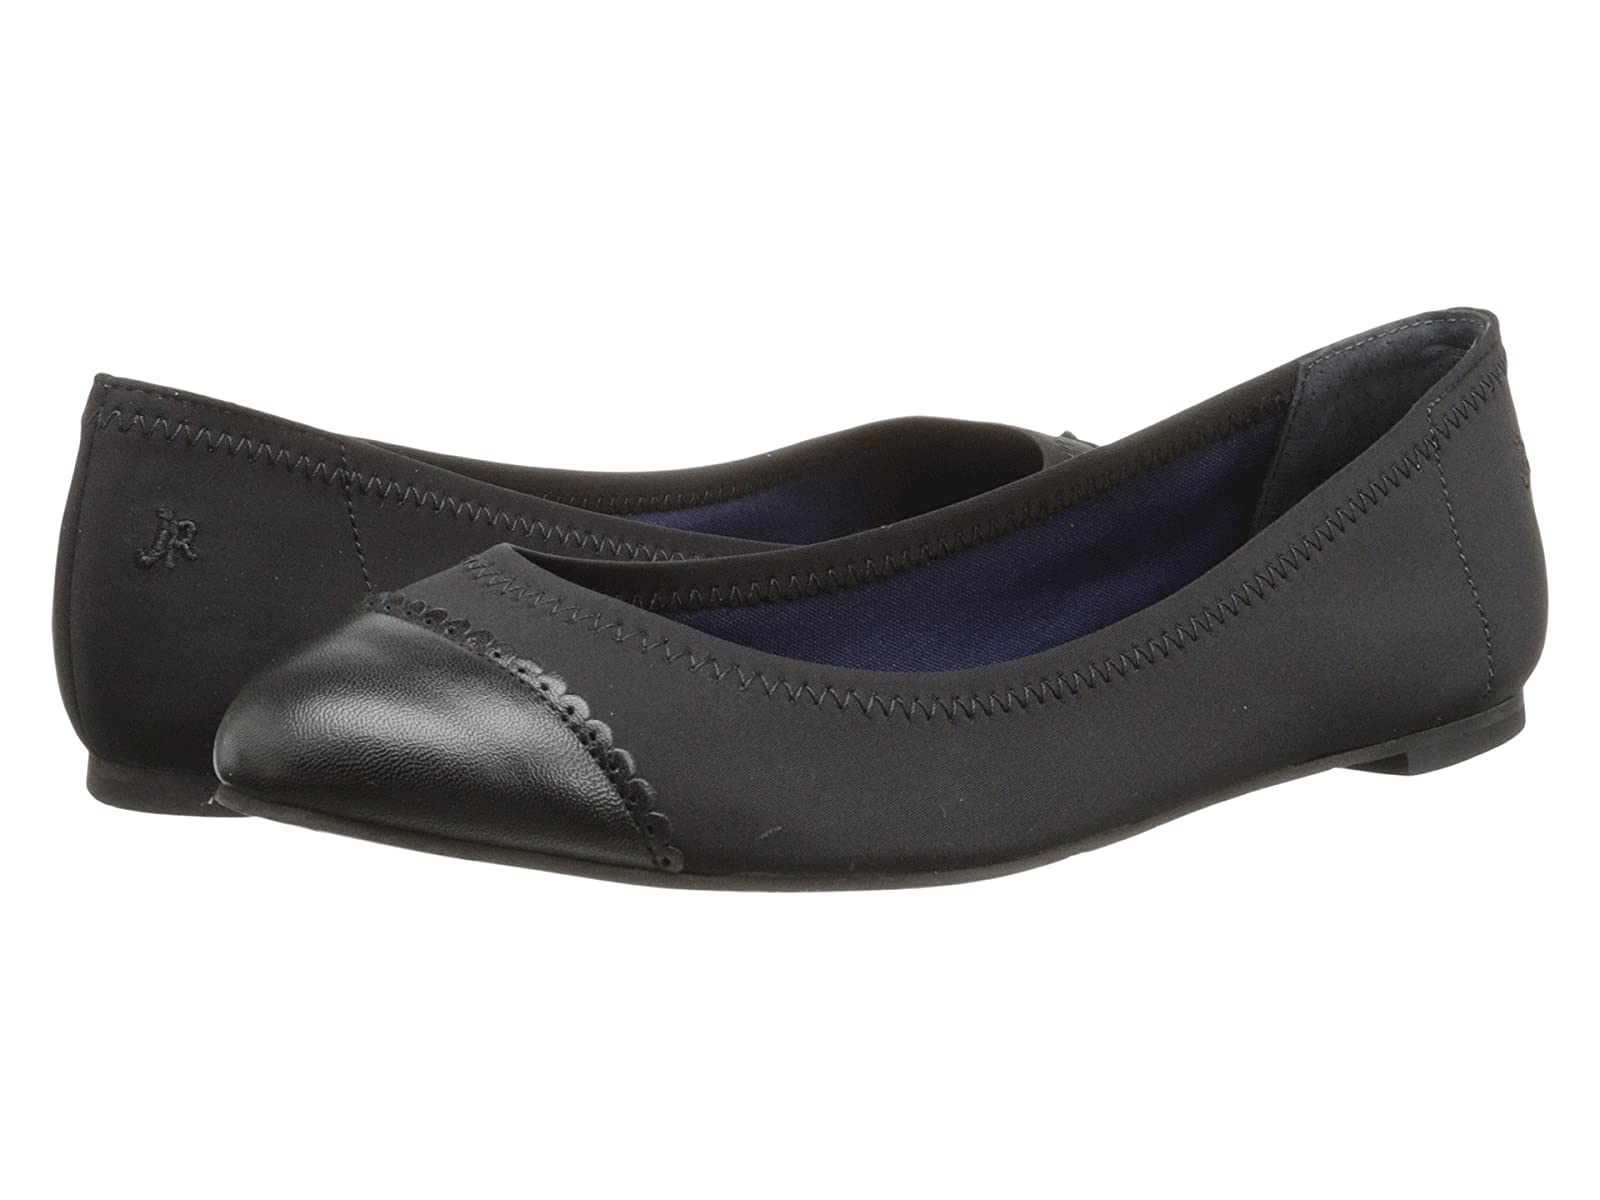 Jack Rogers Bree StretchCheap and distinctive eye-catching shoes